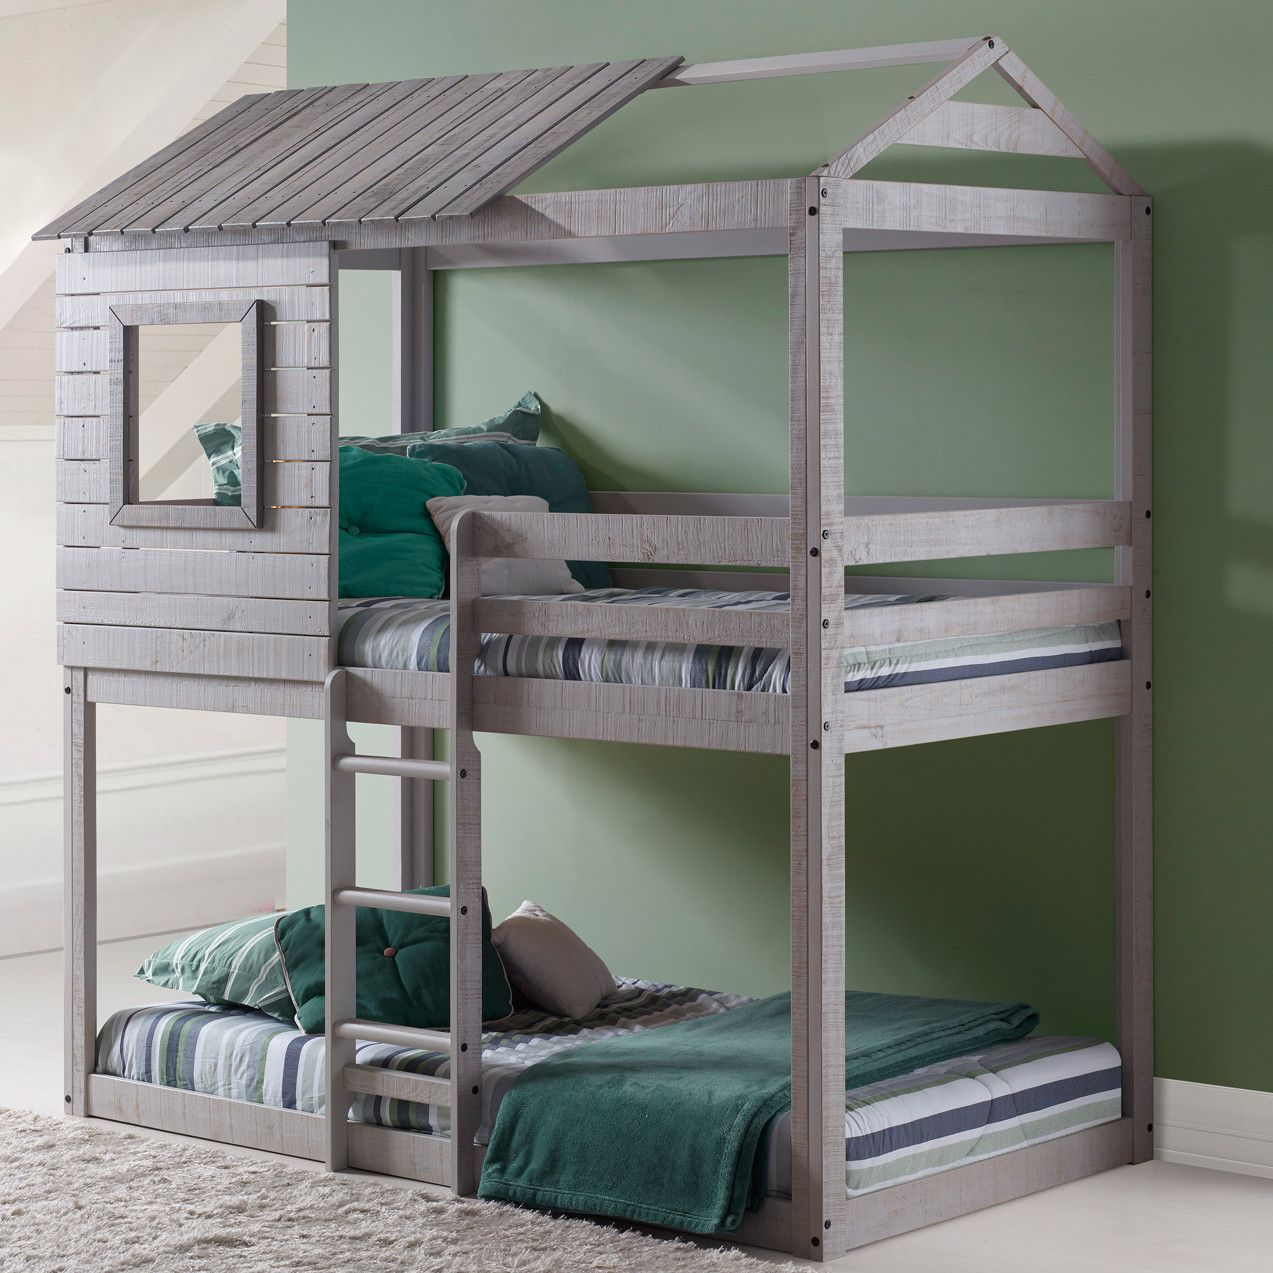 Under loft bed decorating ideas  Donco Kids Twin Bunk Bed  Ideas for the House  Pinterest  Bunk